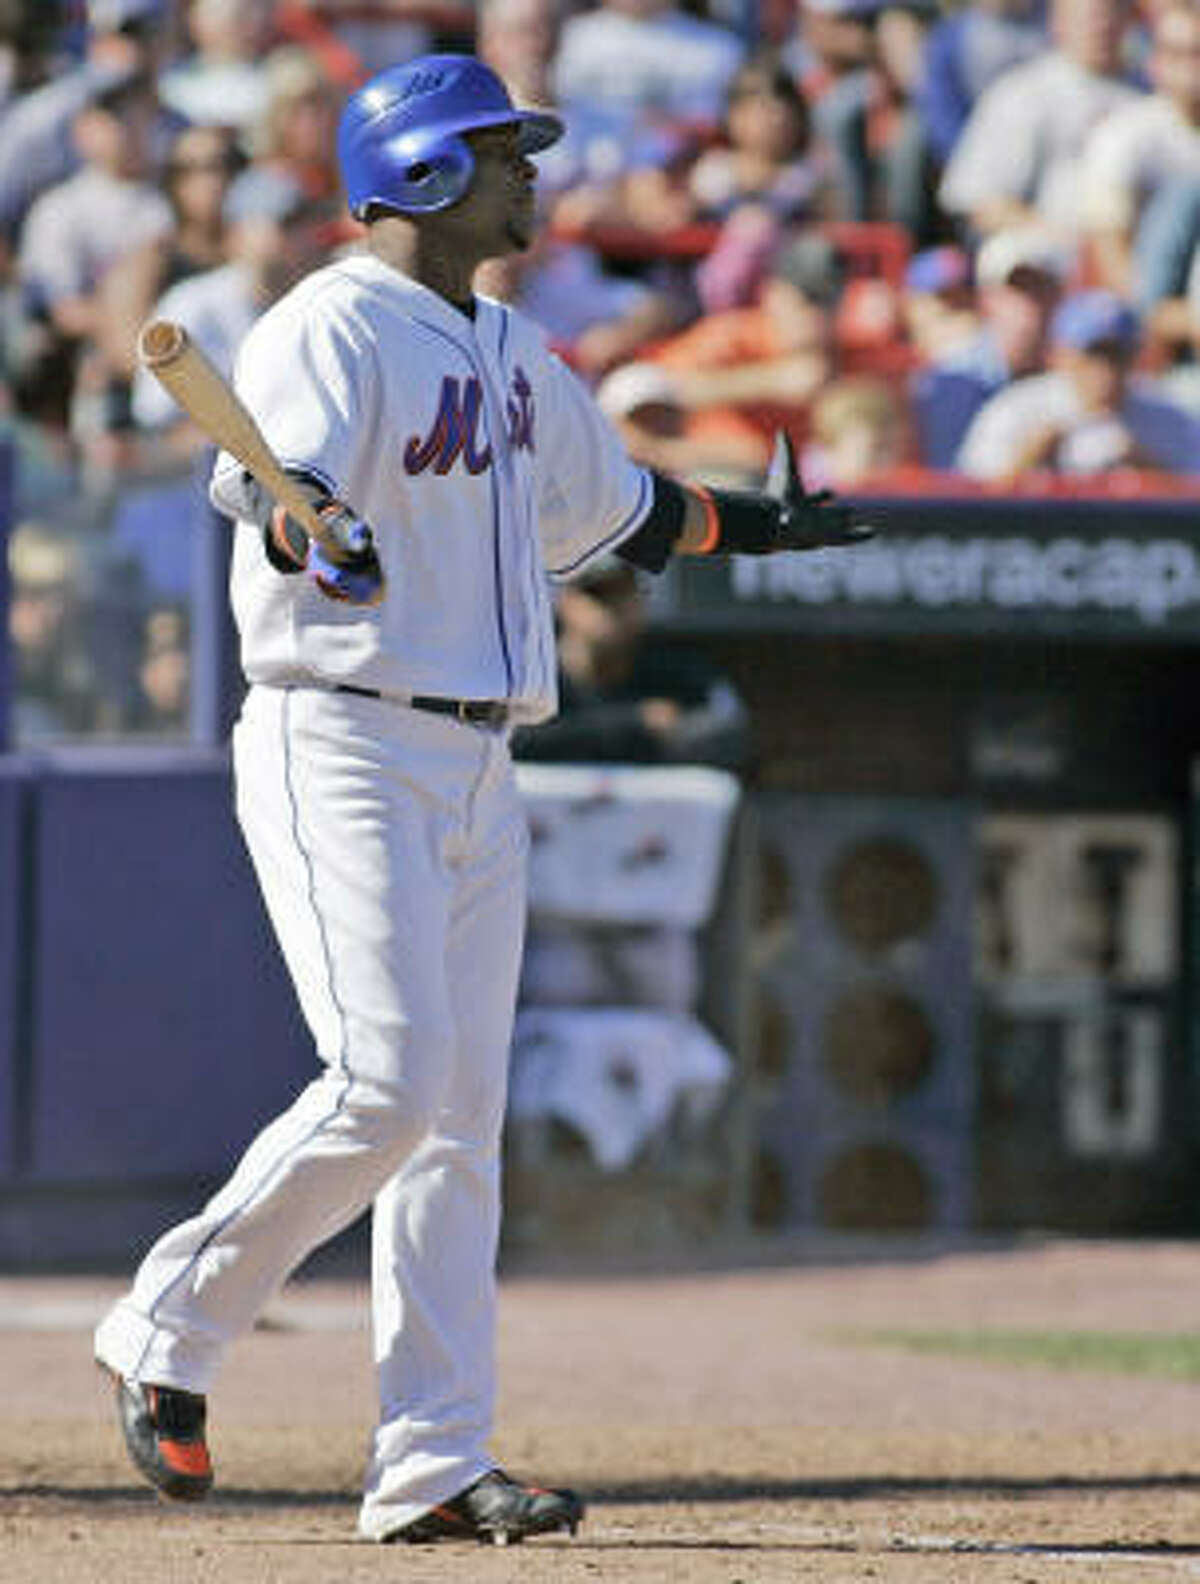 Astros general manager Ed Wade plans on speaking with the agent of Mets free agent second baseman Luis Castillo.